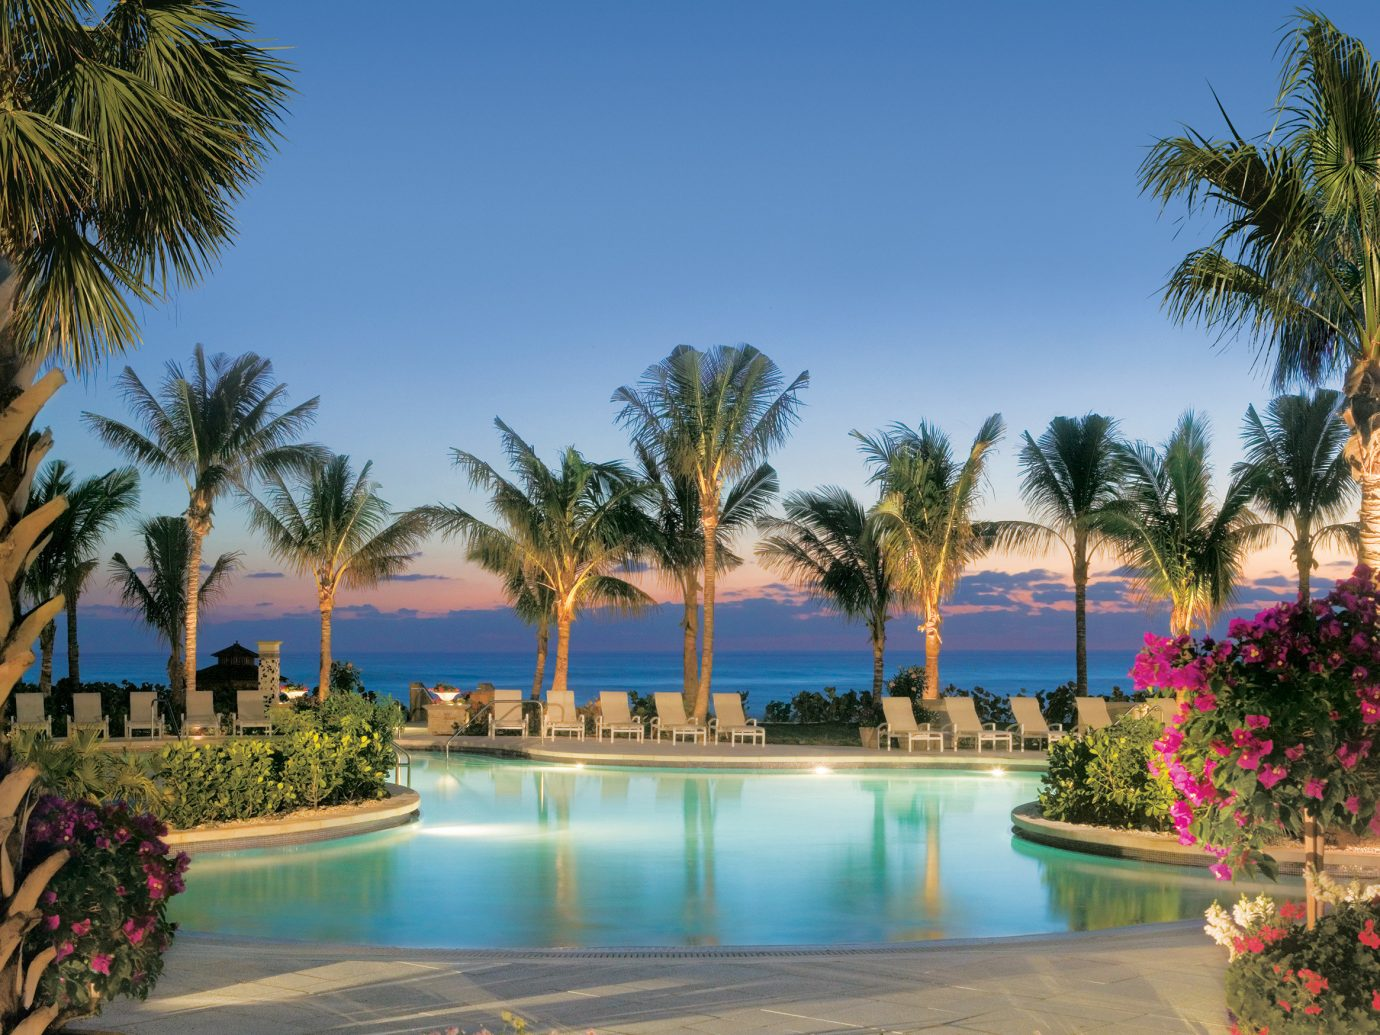 Beachfront Grounds Pool Trip Ideas Tropical tree outdoor palm sky swimming pool property Resort leisure estate vacation arecales plant Villa lined real estate bay mansion Garden bushes shore surrounded